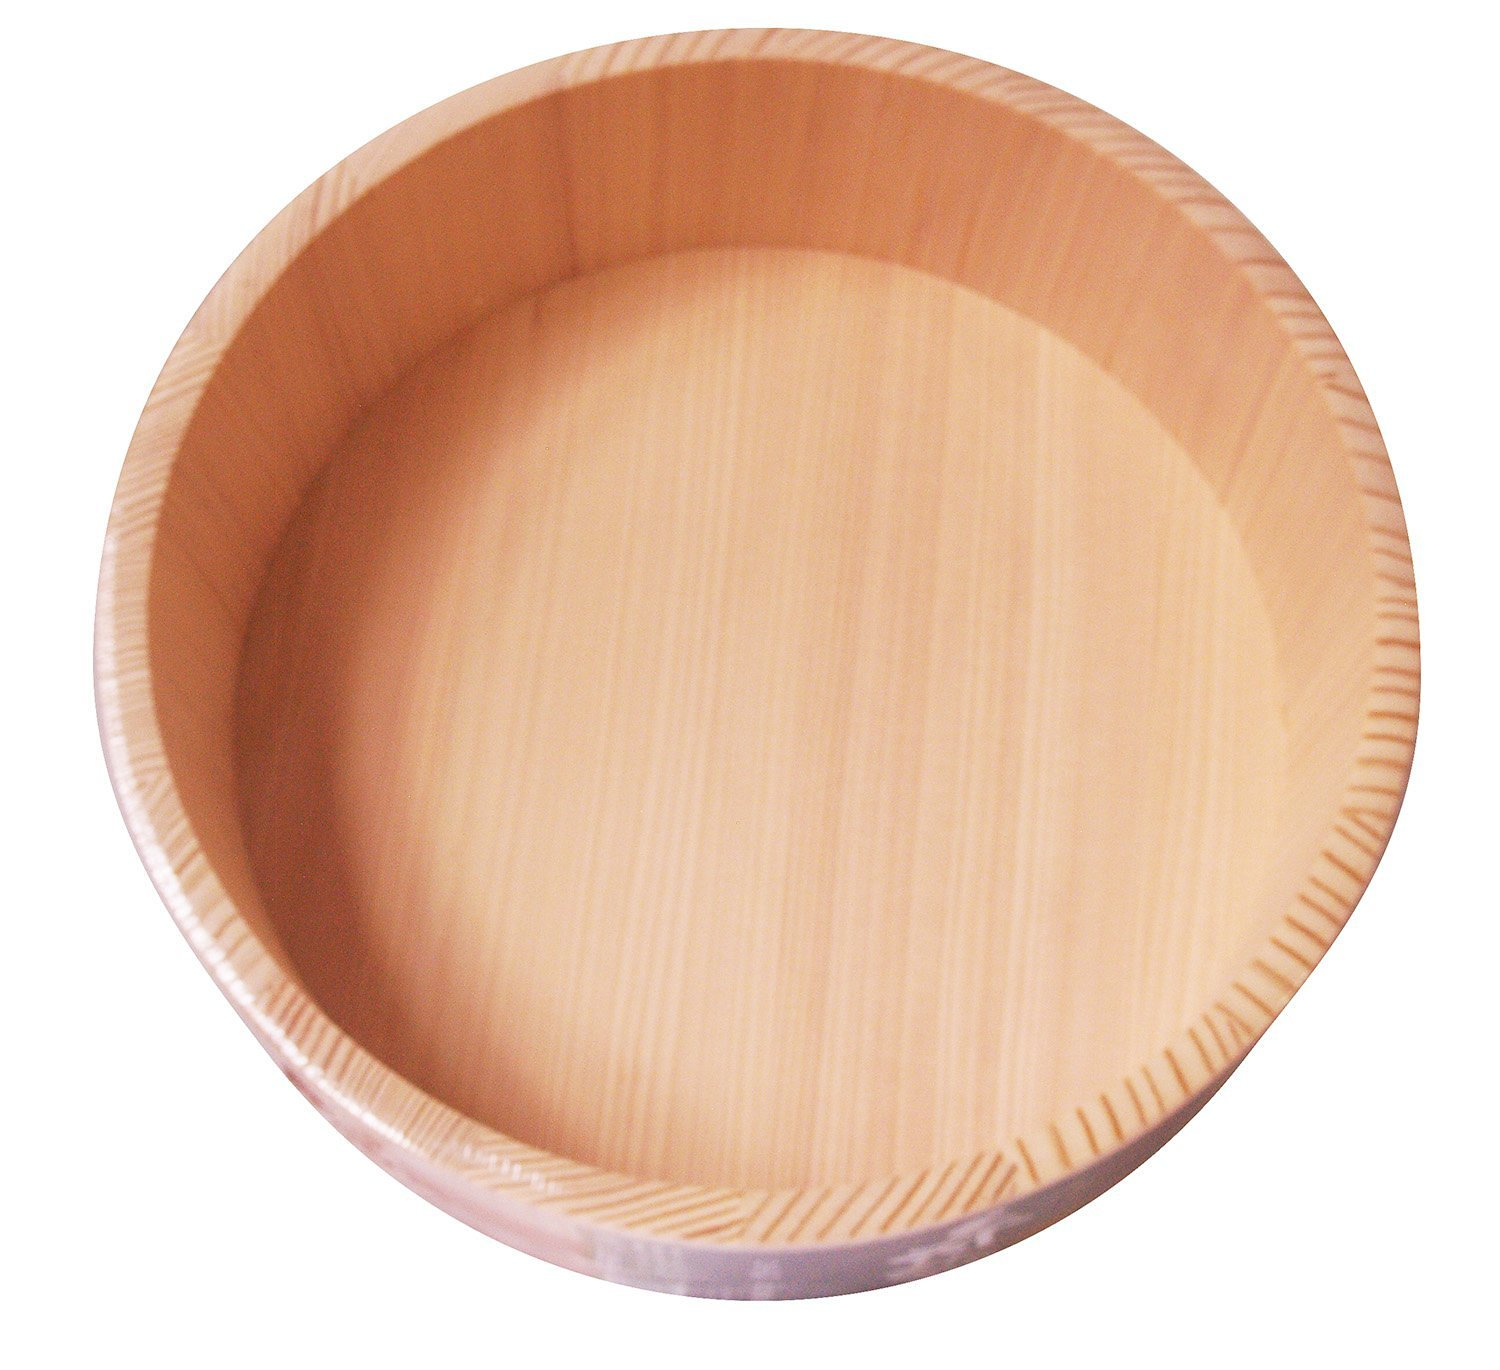 Hangiri wooden sushi rice bowl (36cm(14.2''))